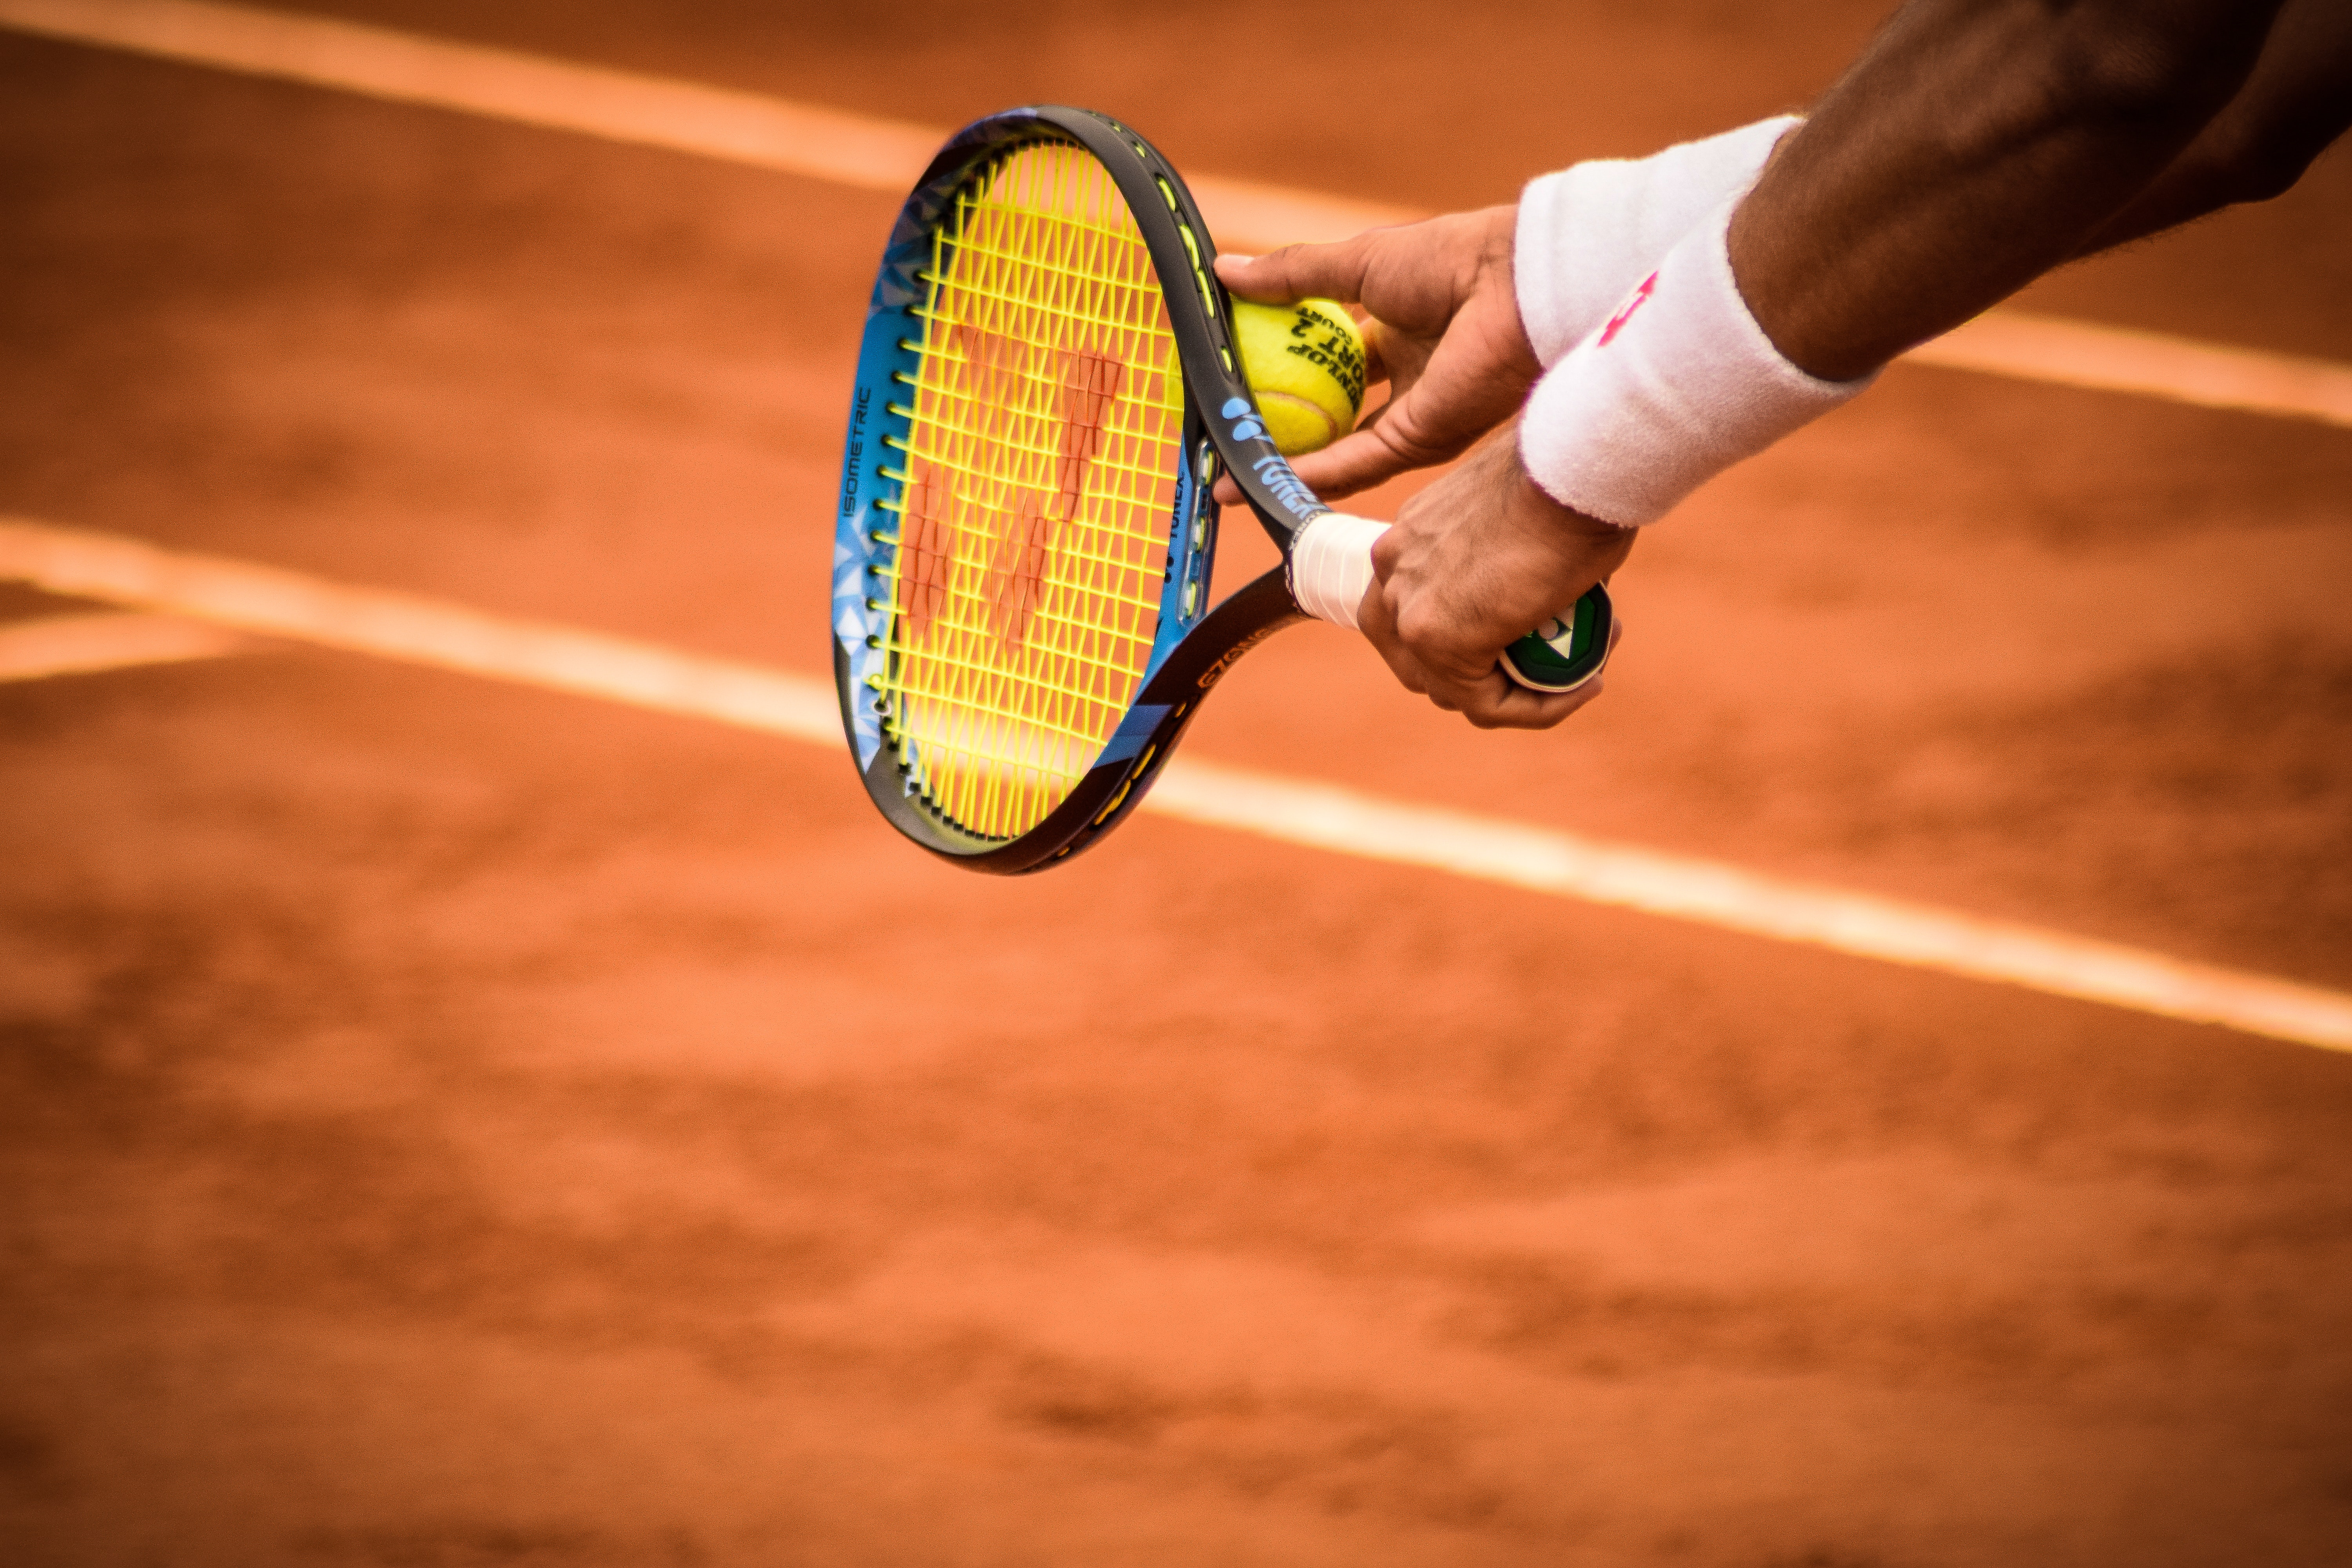 Are You Looking For Free Images Revolving Around Tennis DYZ 3 4 Browse Through Our Collection Of Photos Related To And Find Just What